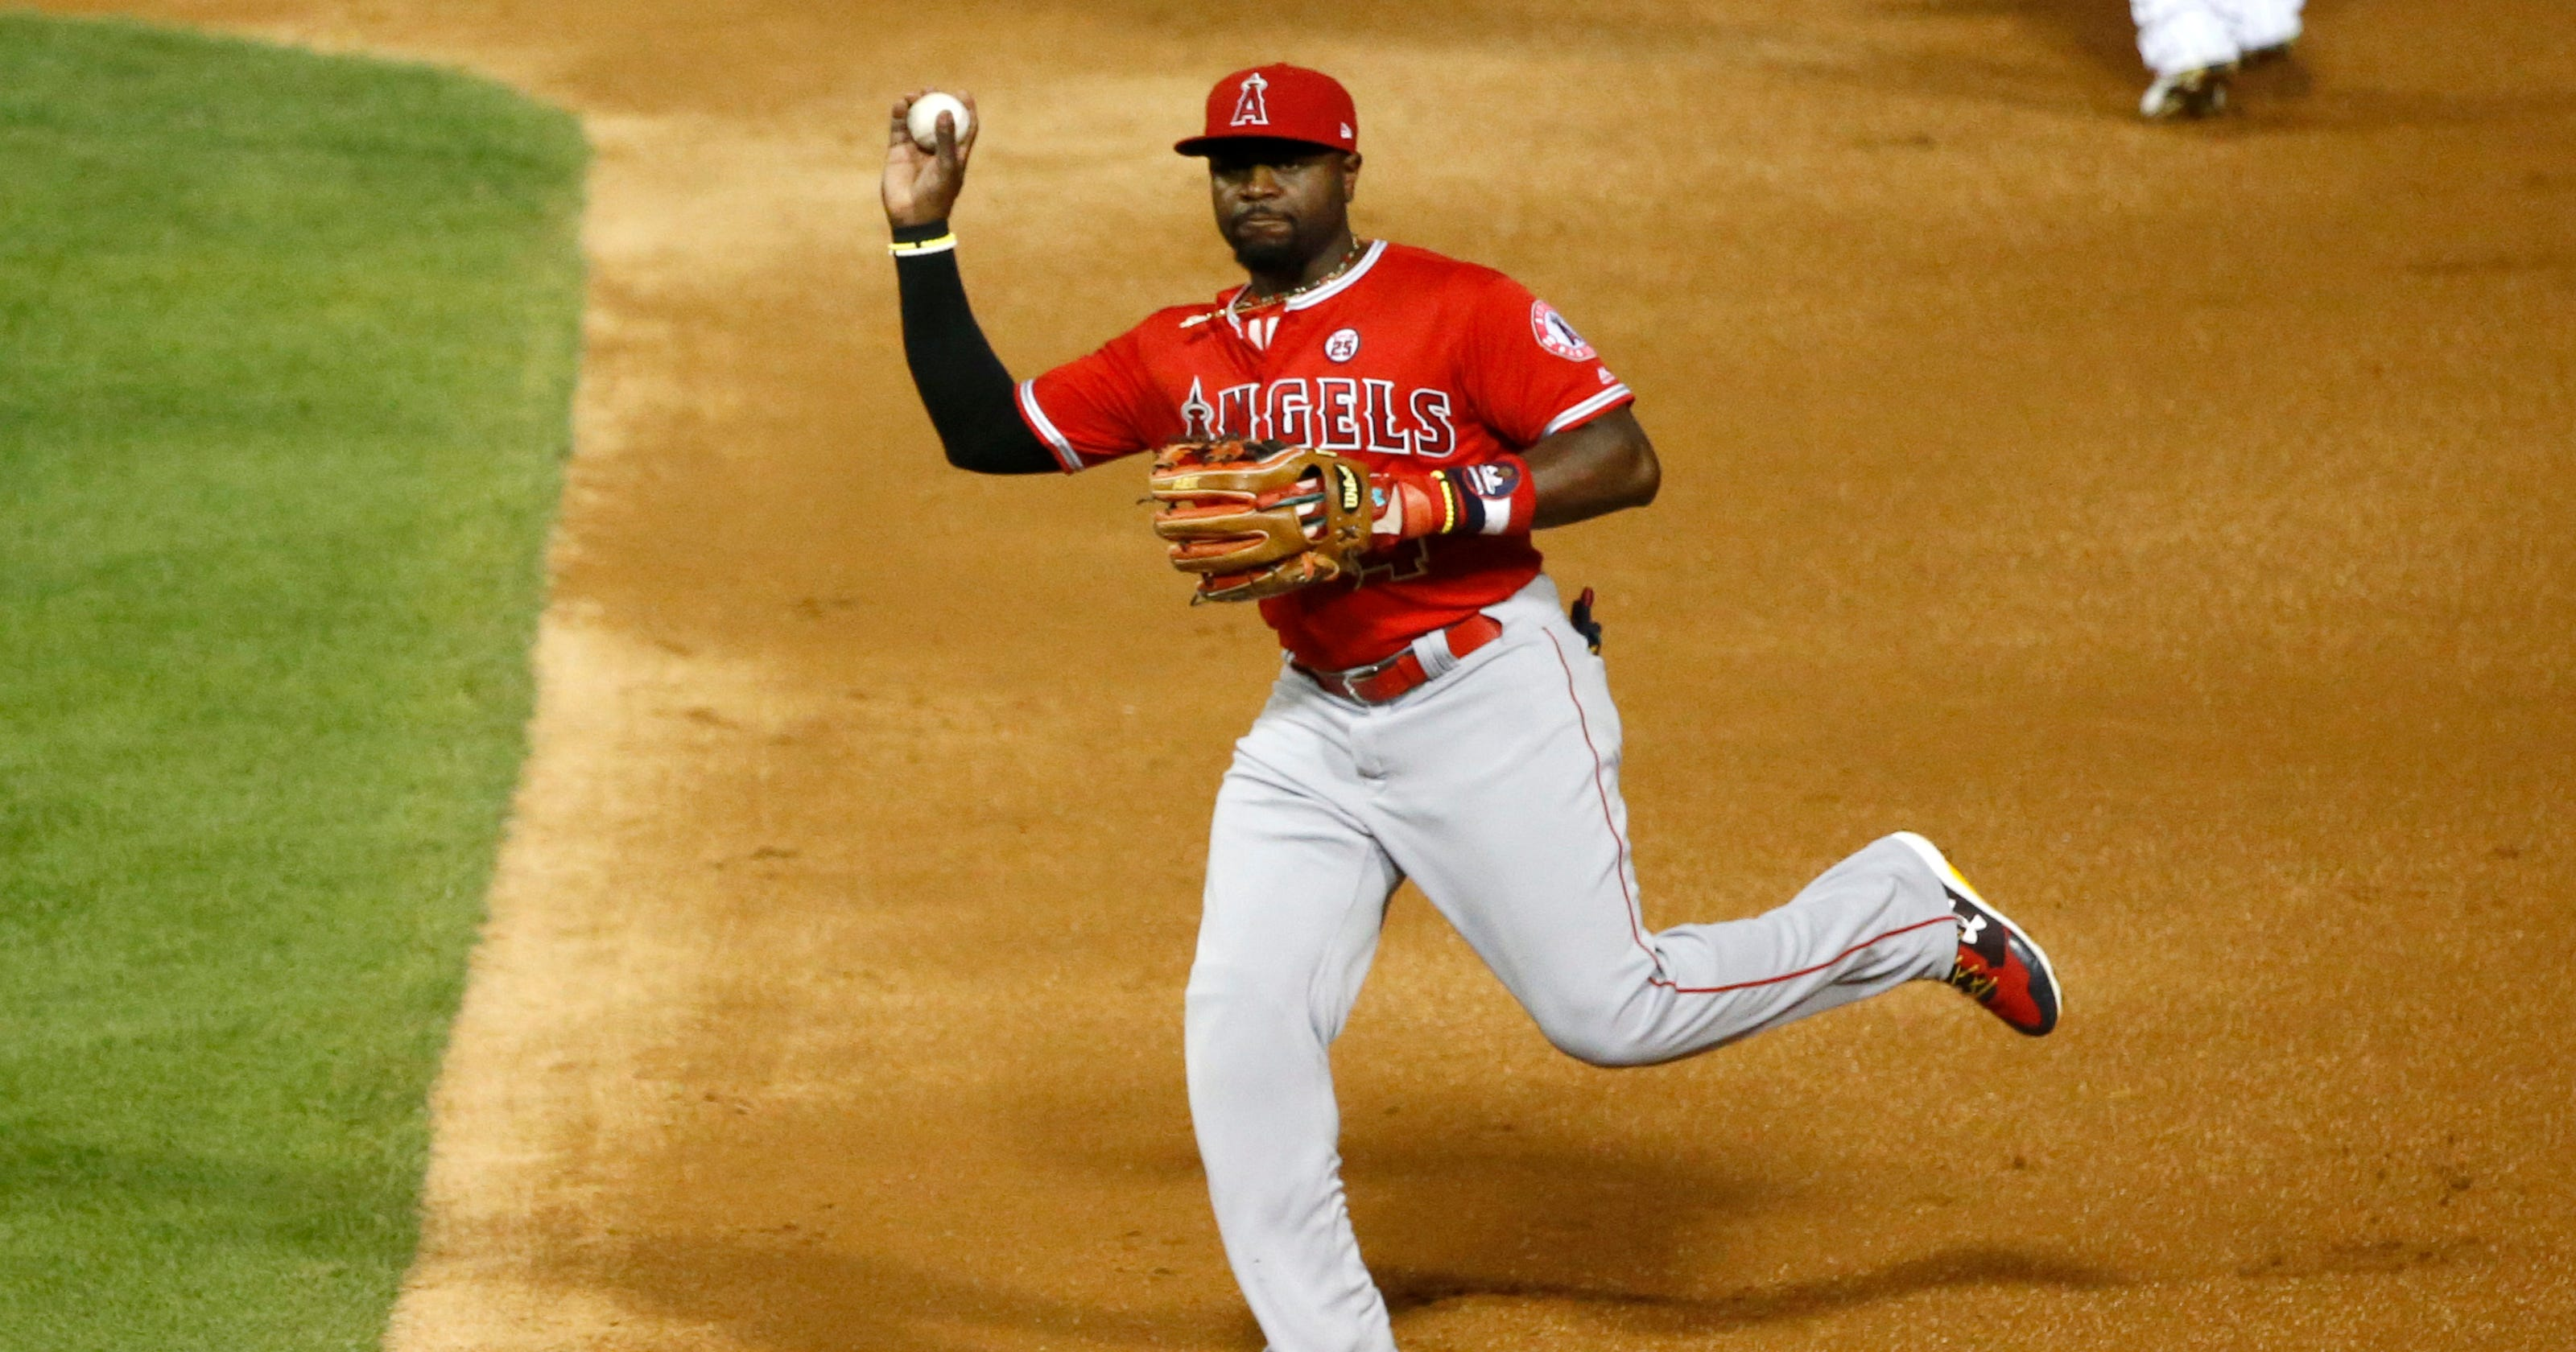 d82caa859 How is Brandon Phillips doing in his minor league comeback